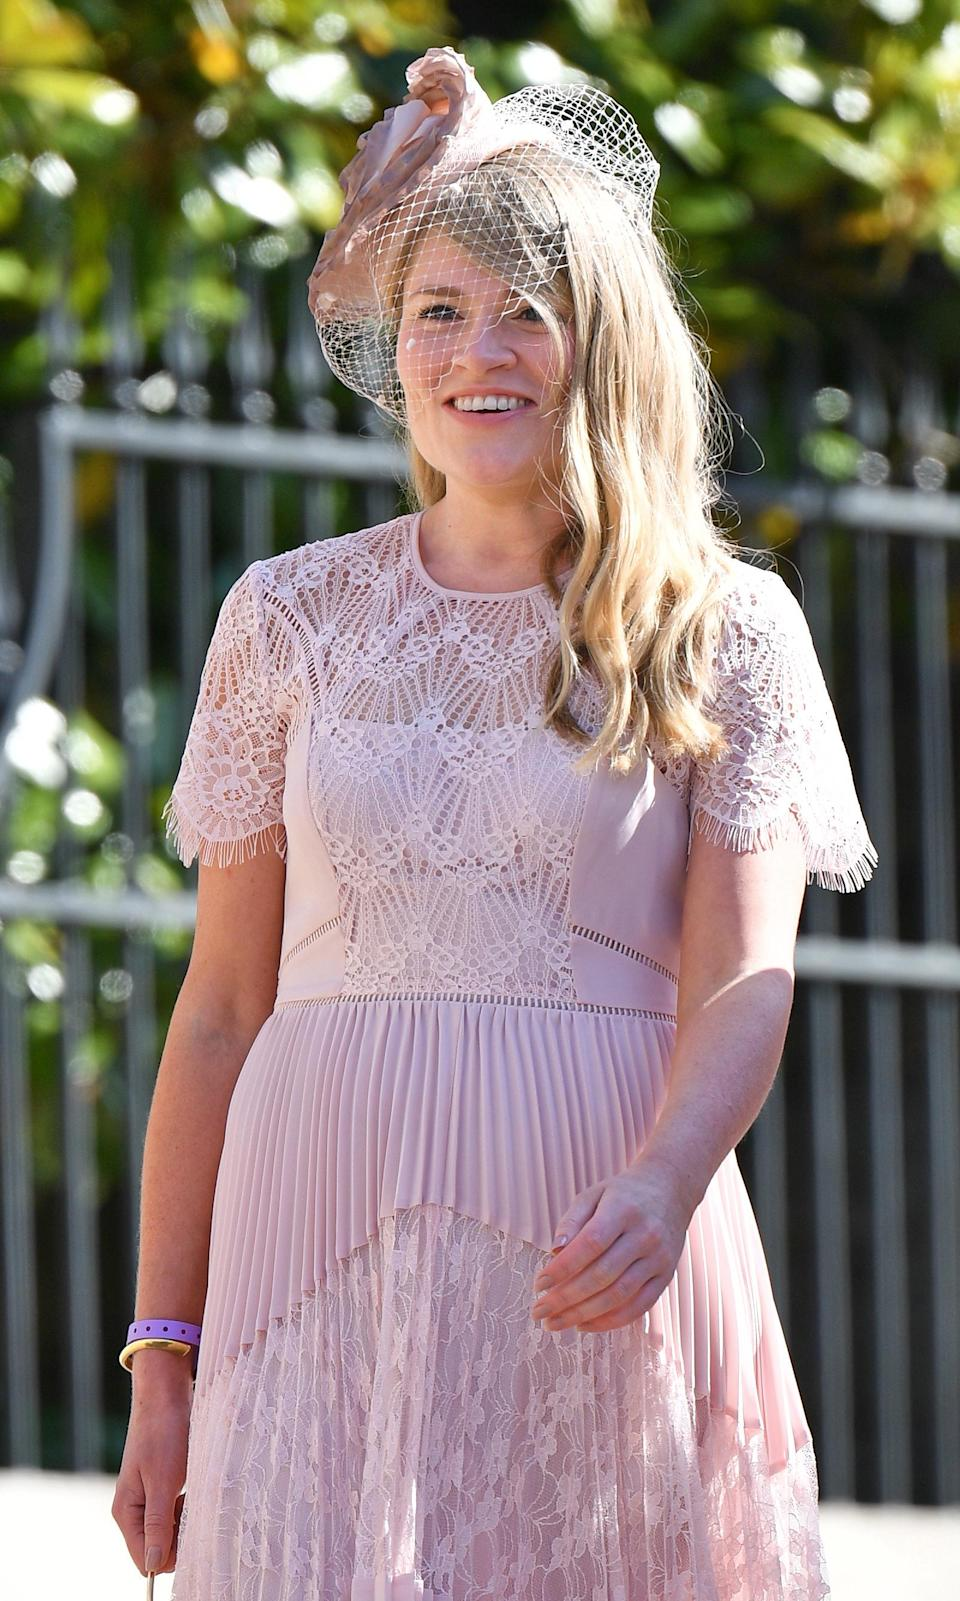 Amy Pickerill at the royal wedding. [Photo: Getty]